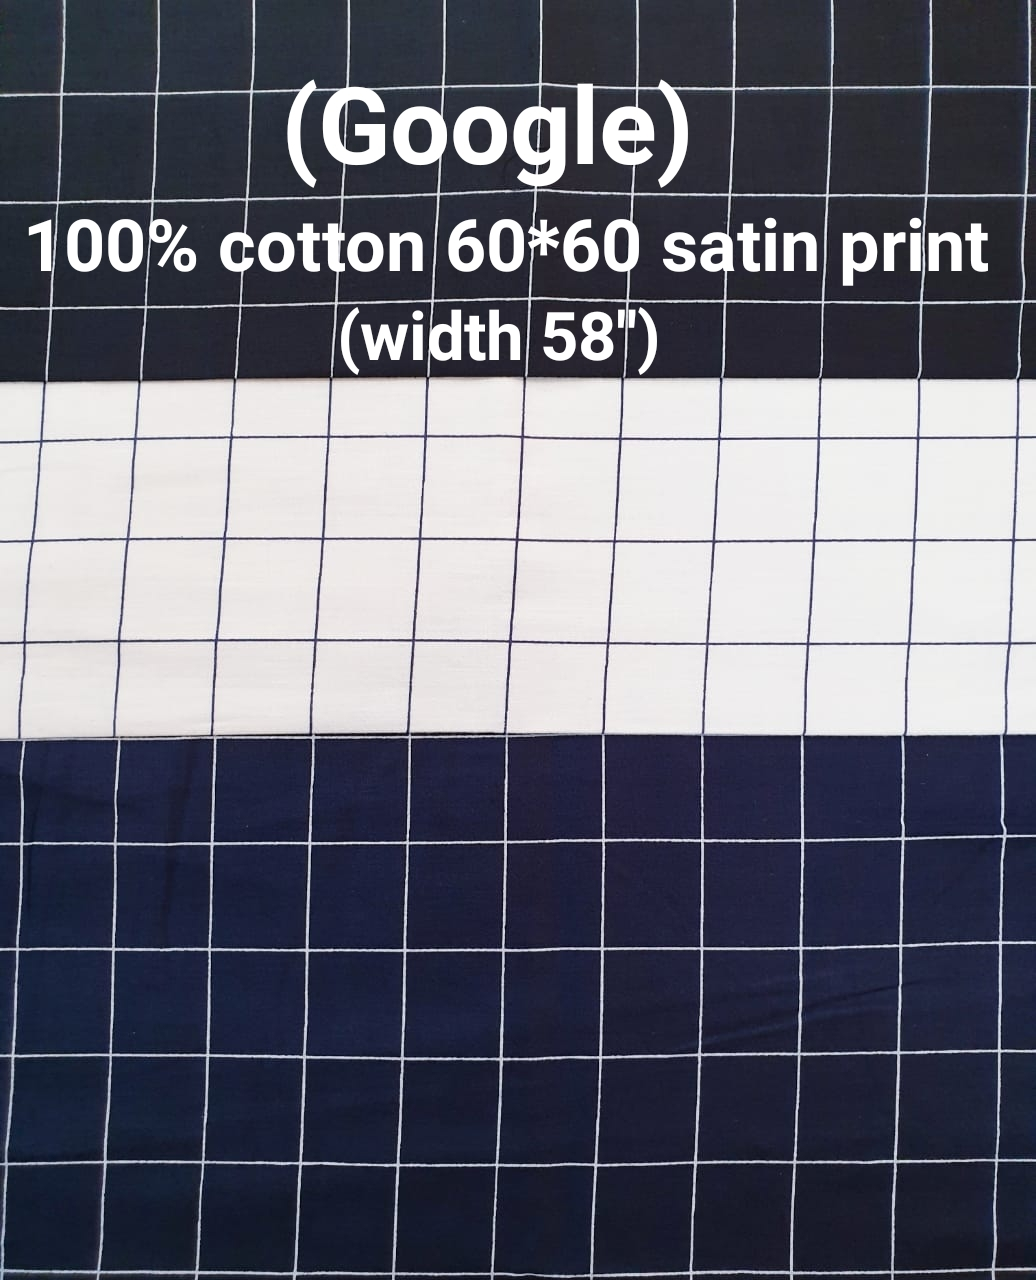 Google 100% cotton 60*60 satin print check